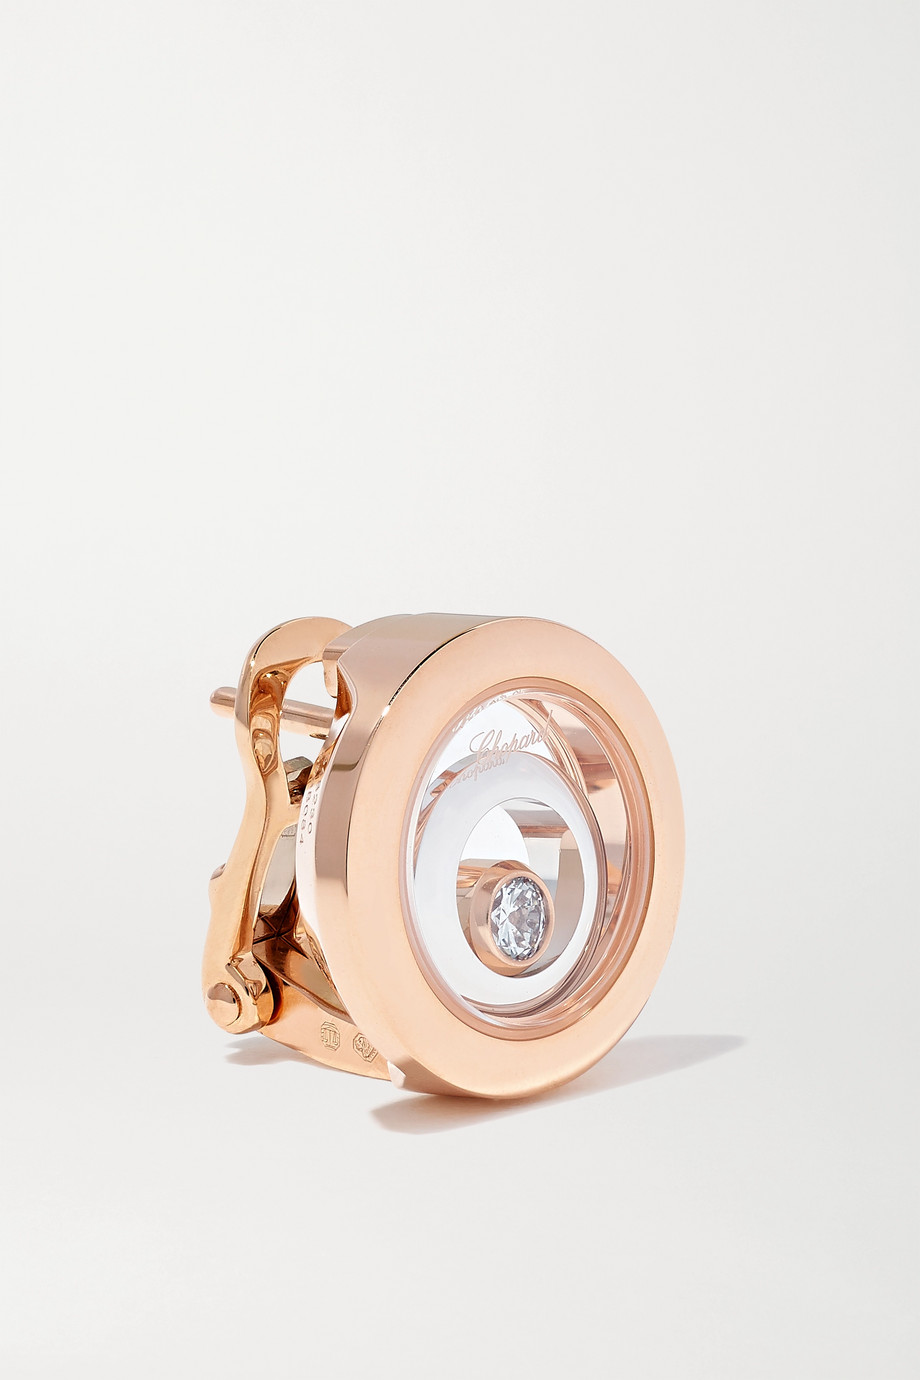 Chopard Boucles d'oreilles en or rose et blanc 18 carats et diamants Happy Spirit